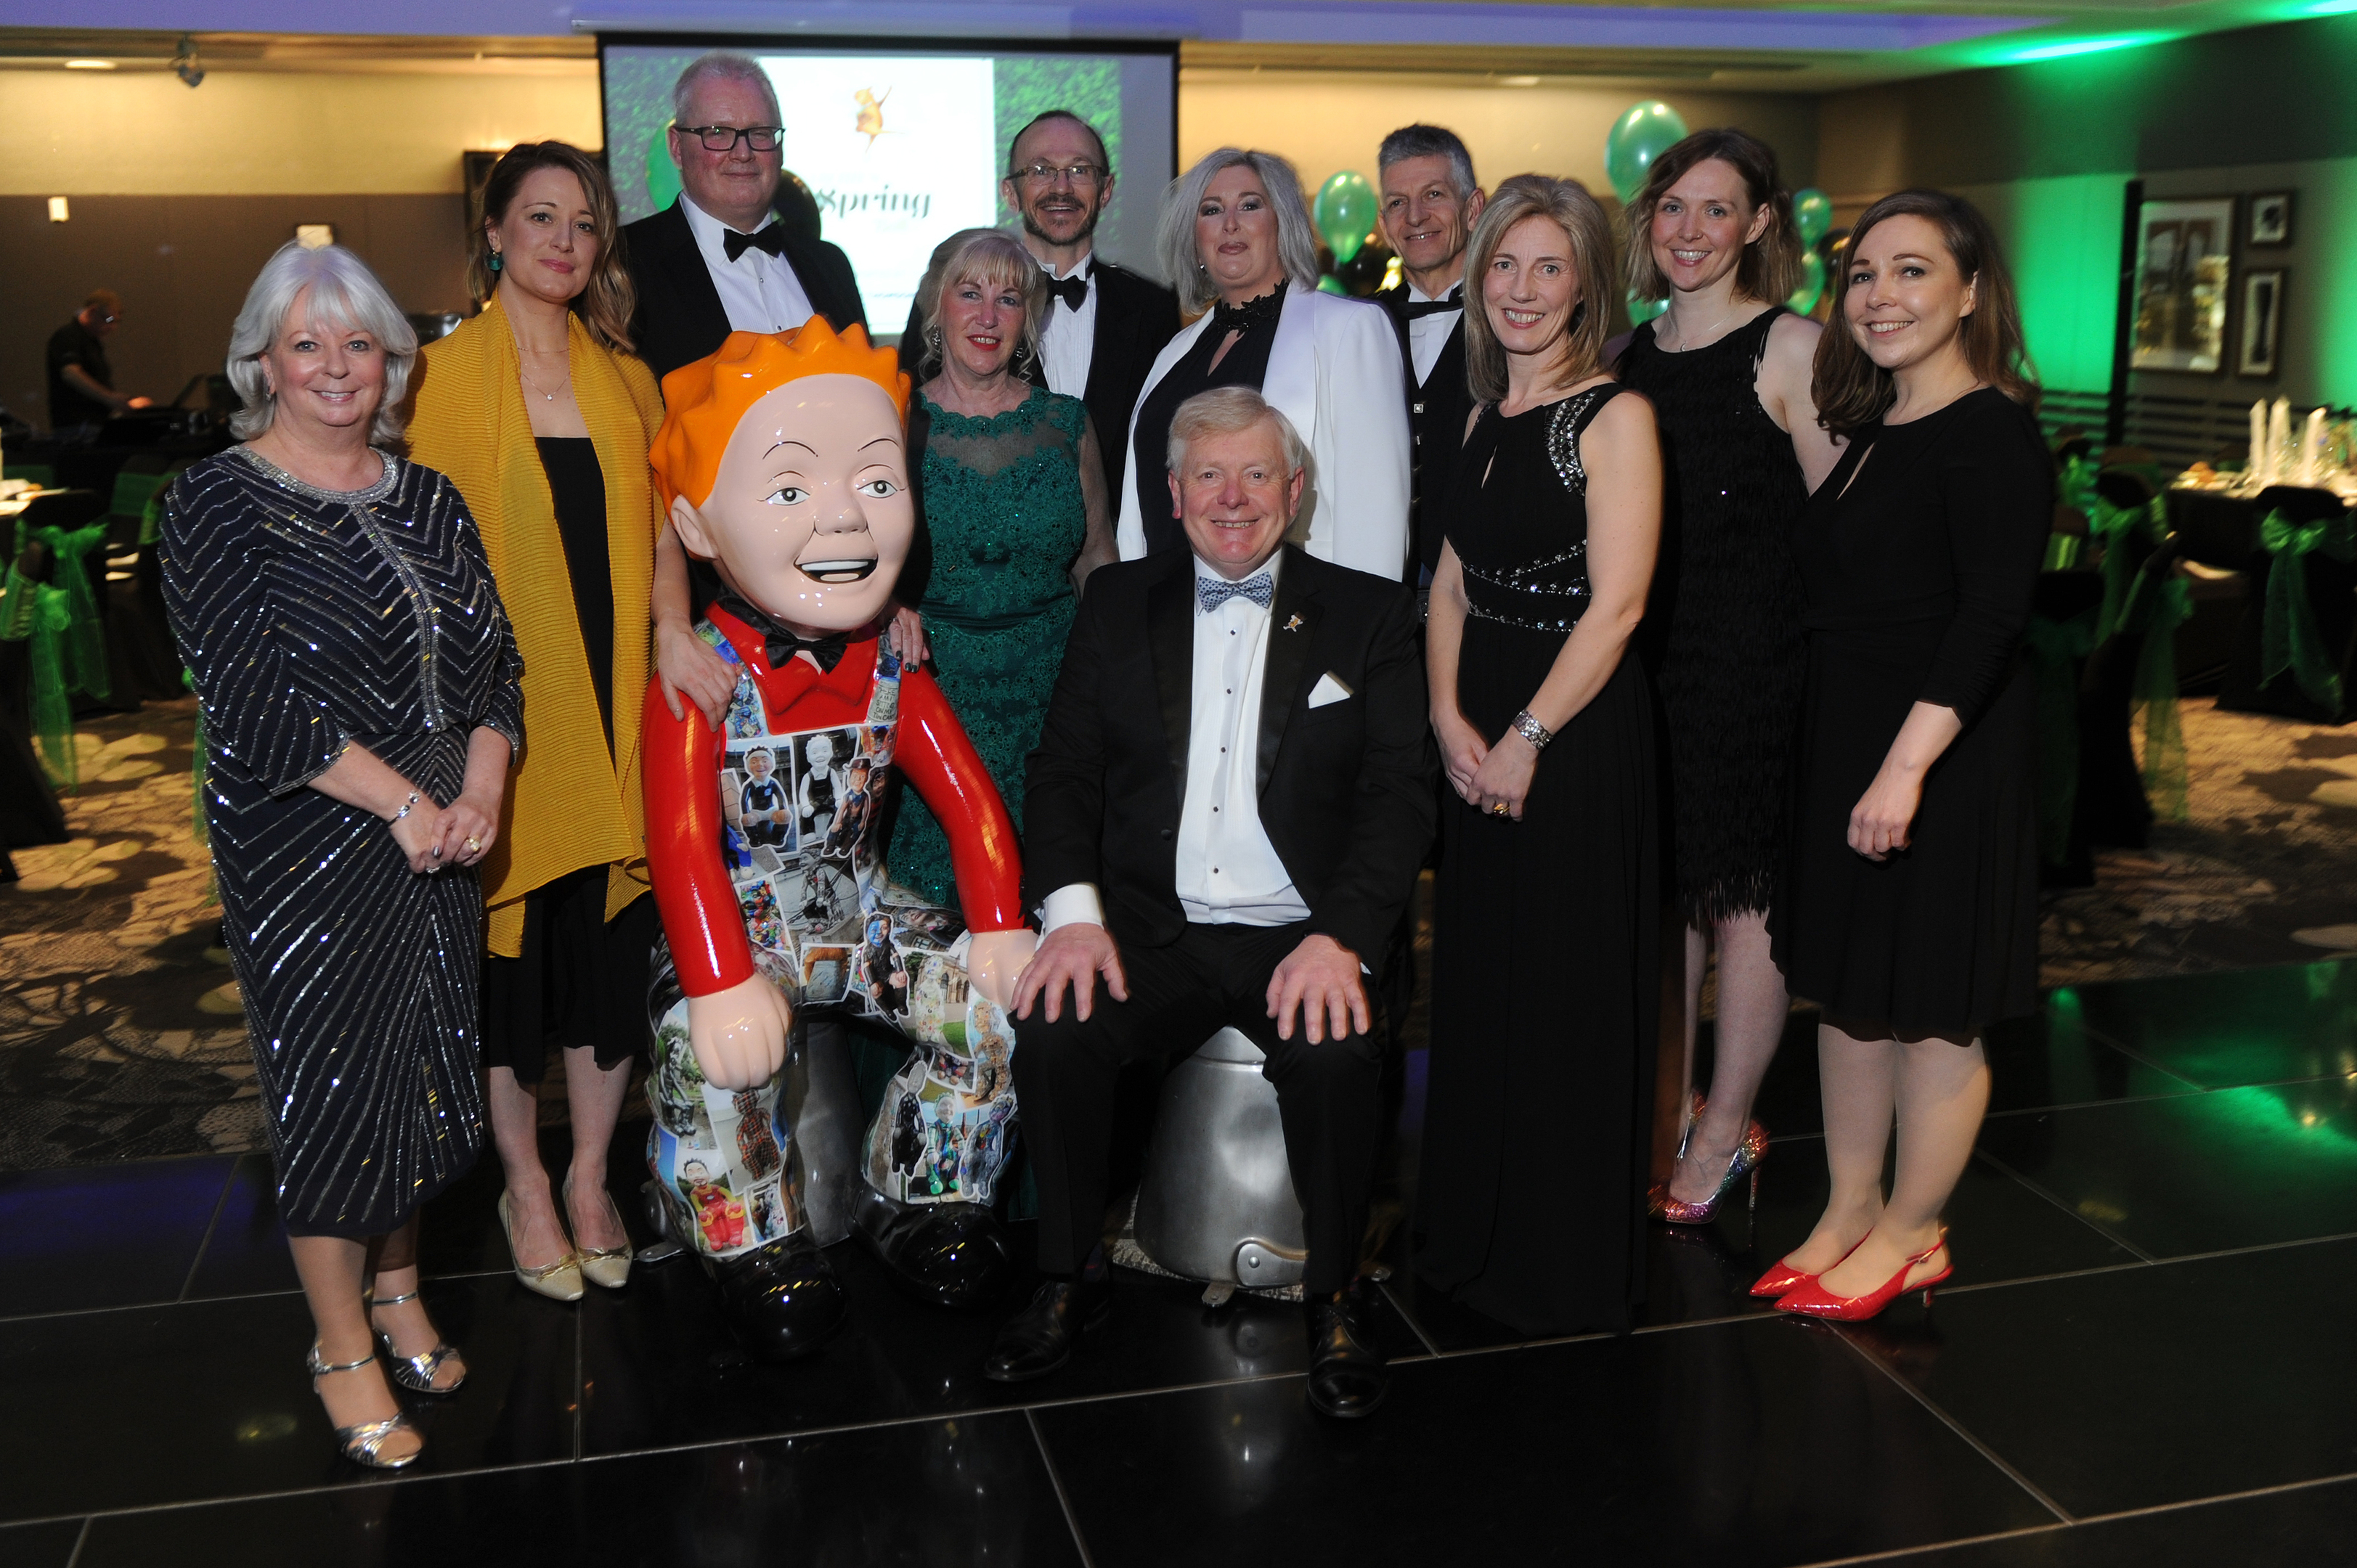 Gillian Bayford, wearing white, is pictured with the ARCHIE committee and Wullie at Friday night's bash.